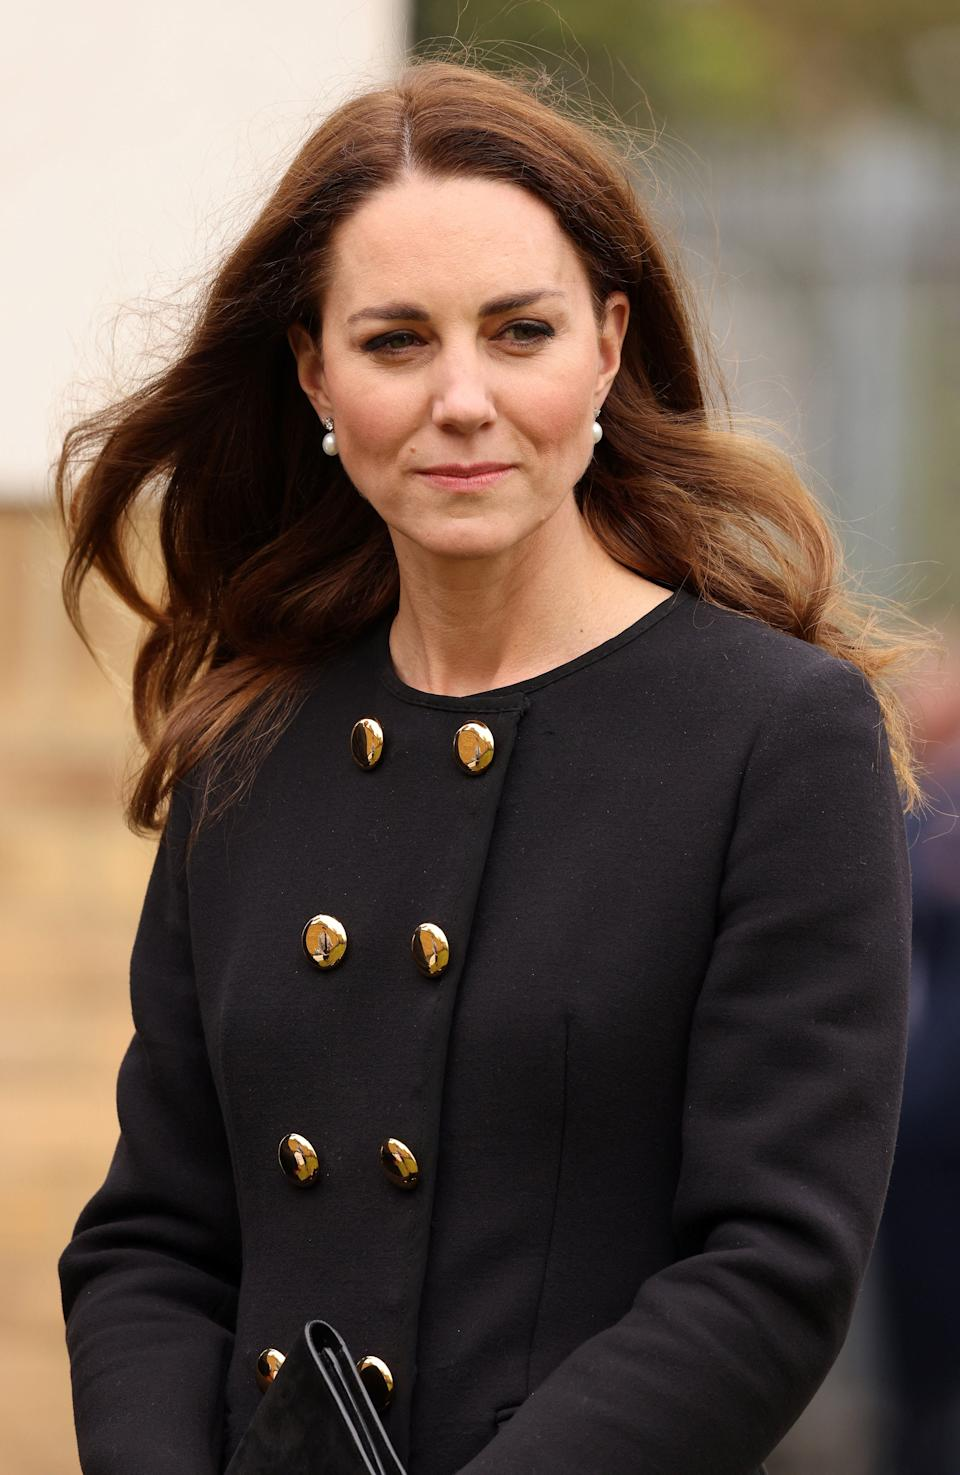 Britain's Catherine, Duchess of Cambridge, wearing black as a mark of respect following the death of Britain's Prince Philip, Duke of Edinburgh, meet air Cadets during their visit to 282 (East Ham) Squadron Air Training Corps in east London on April 21, 2021